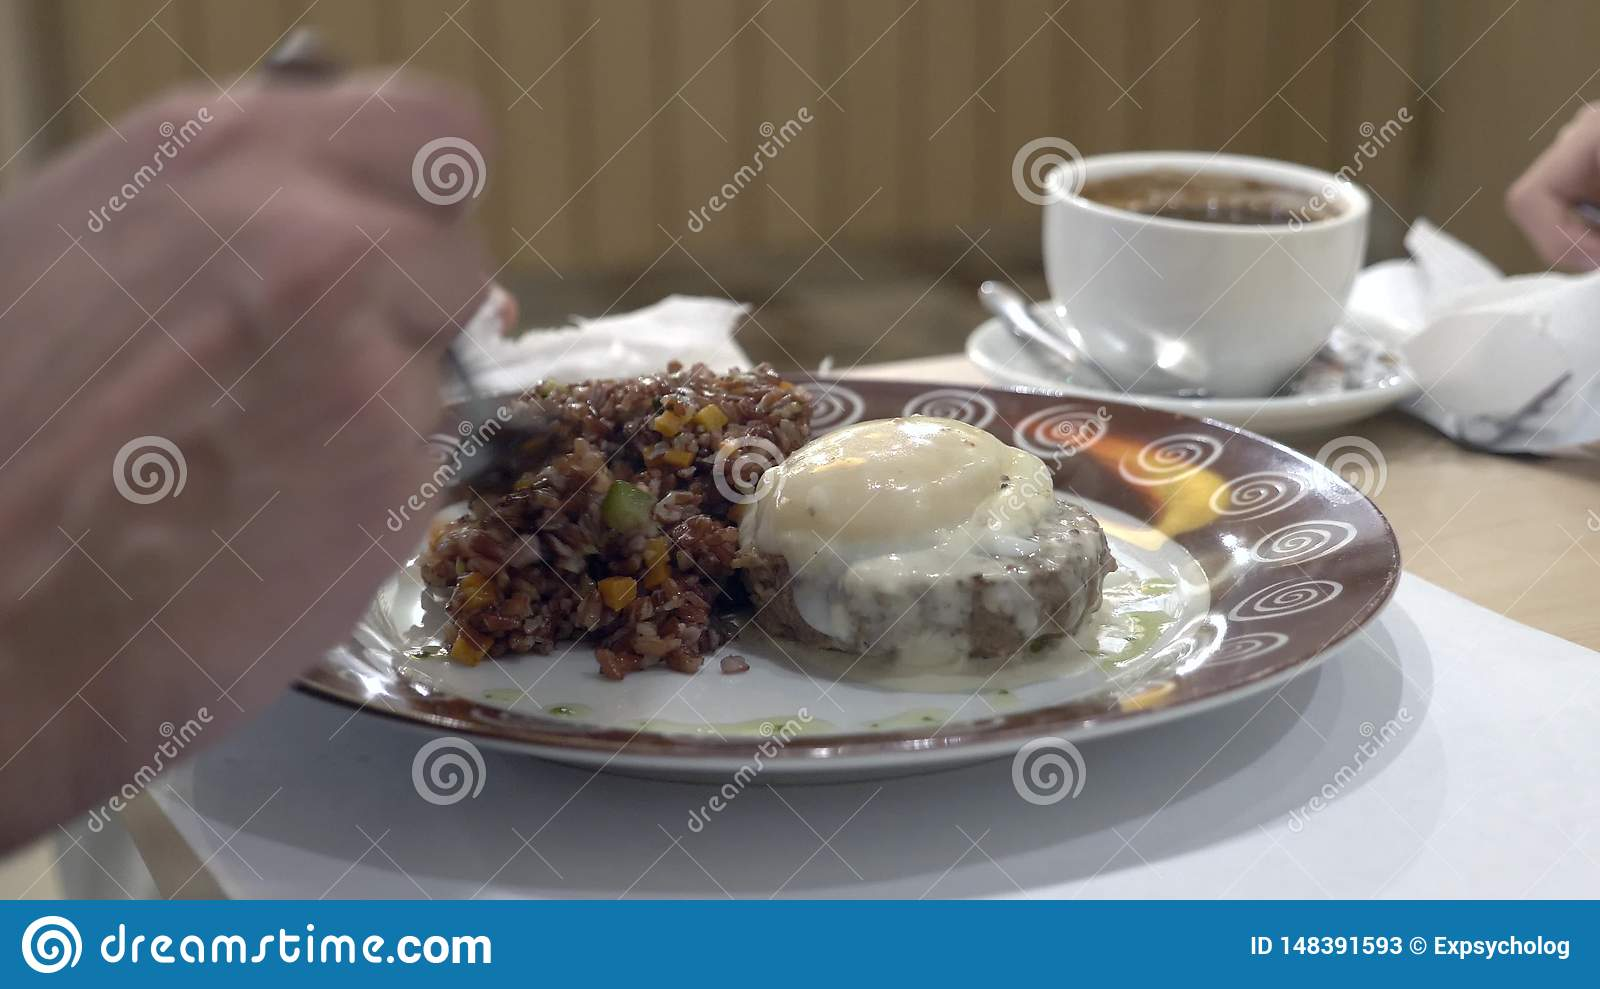 Close-up. 4k. the man eats red rice with beef steak and egg poached, with vegetables.